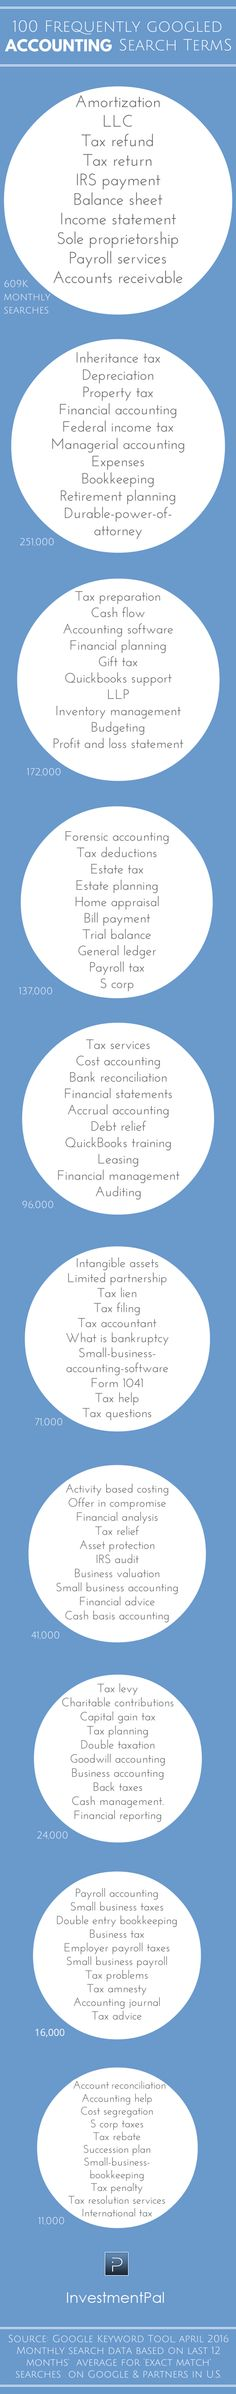 Part 4: 100 frequently Googled accounting topics & terms (Infographic) > http://blog.investmentpal.com/about-accounting-topics-terms-Googled/